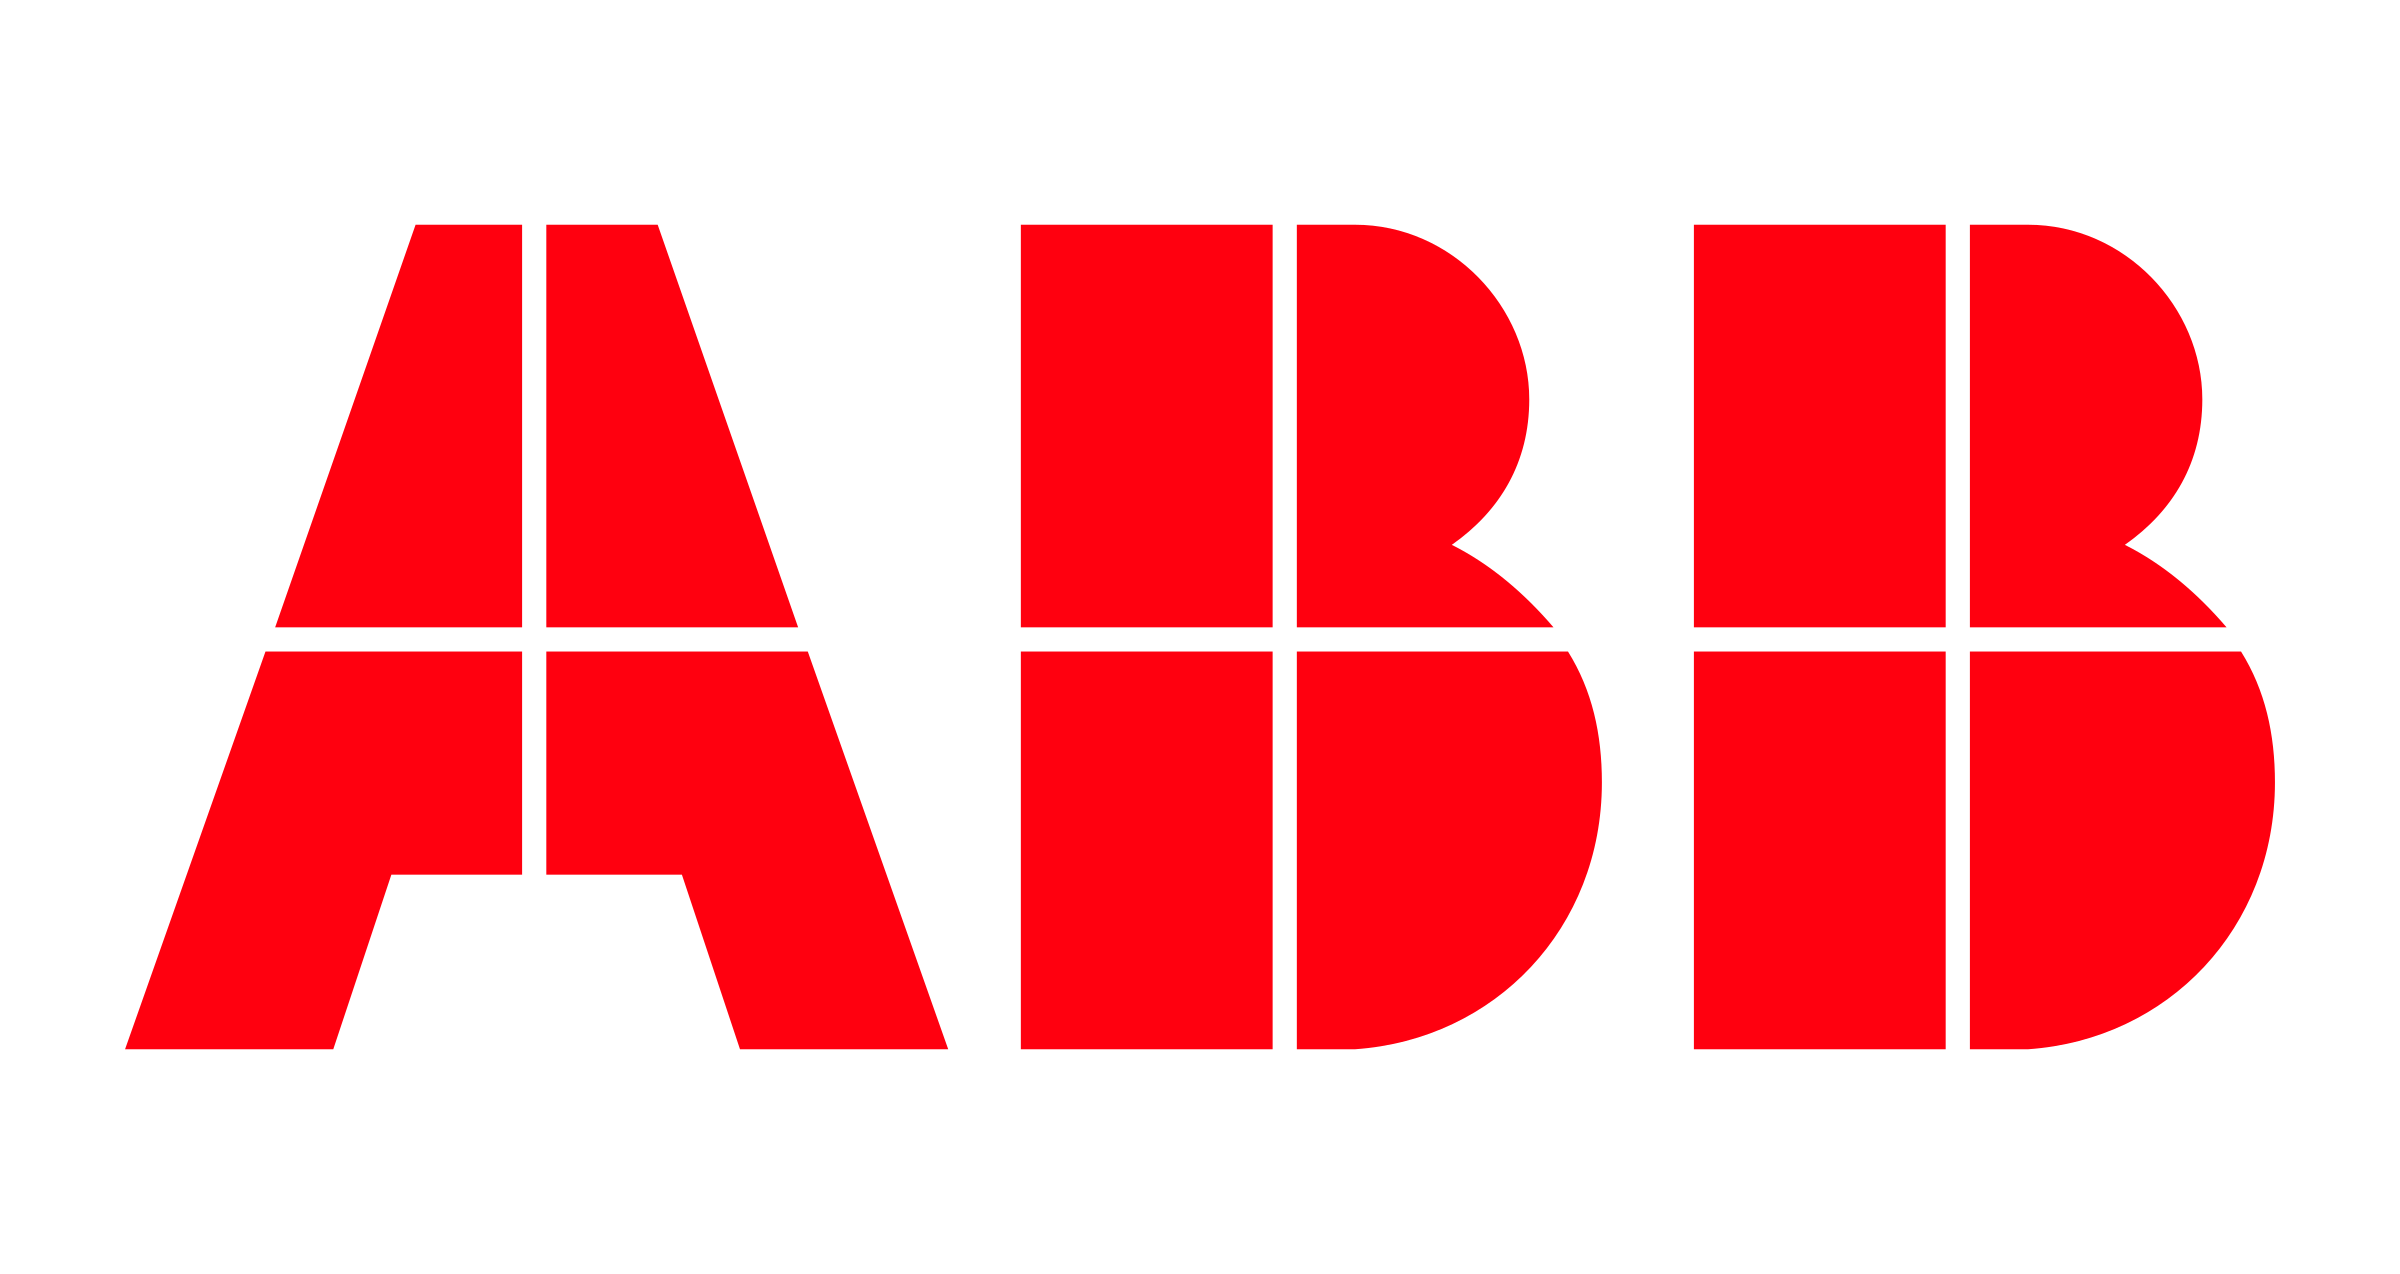 ABB Logo - abb-logo-png-transparent - Efficient Plant